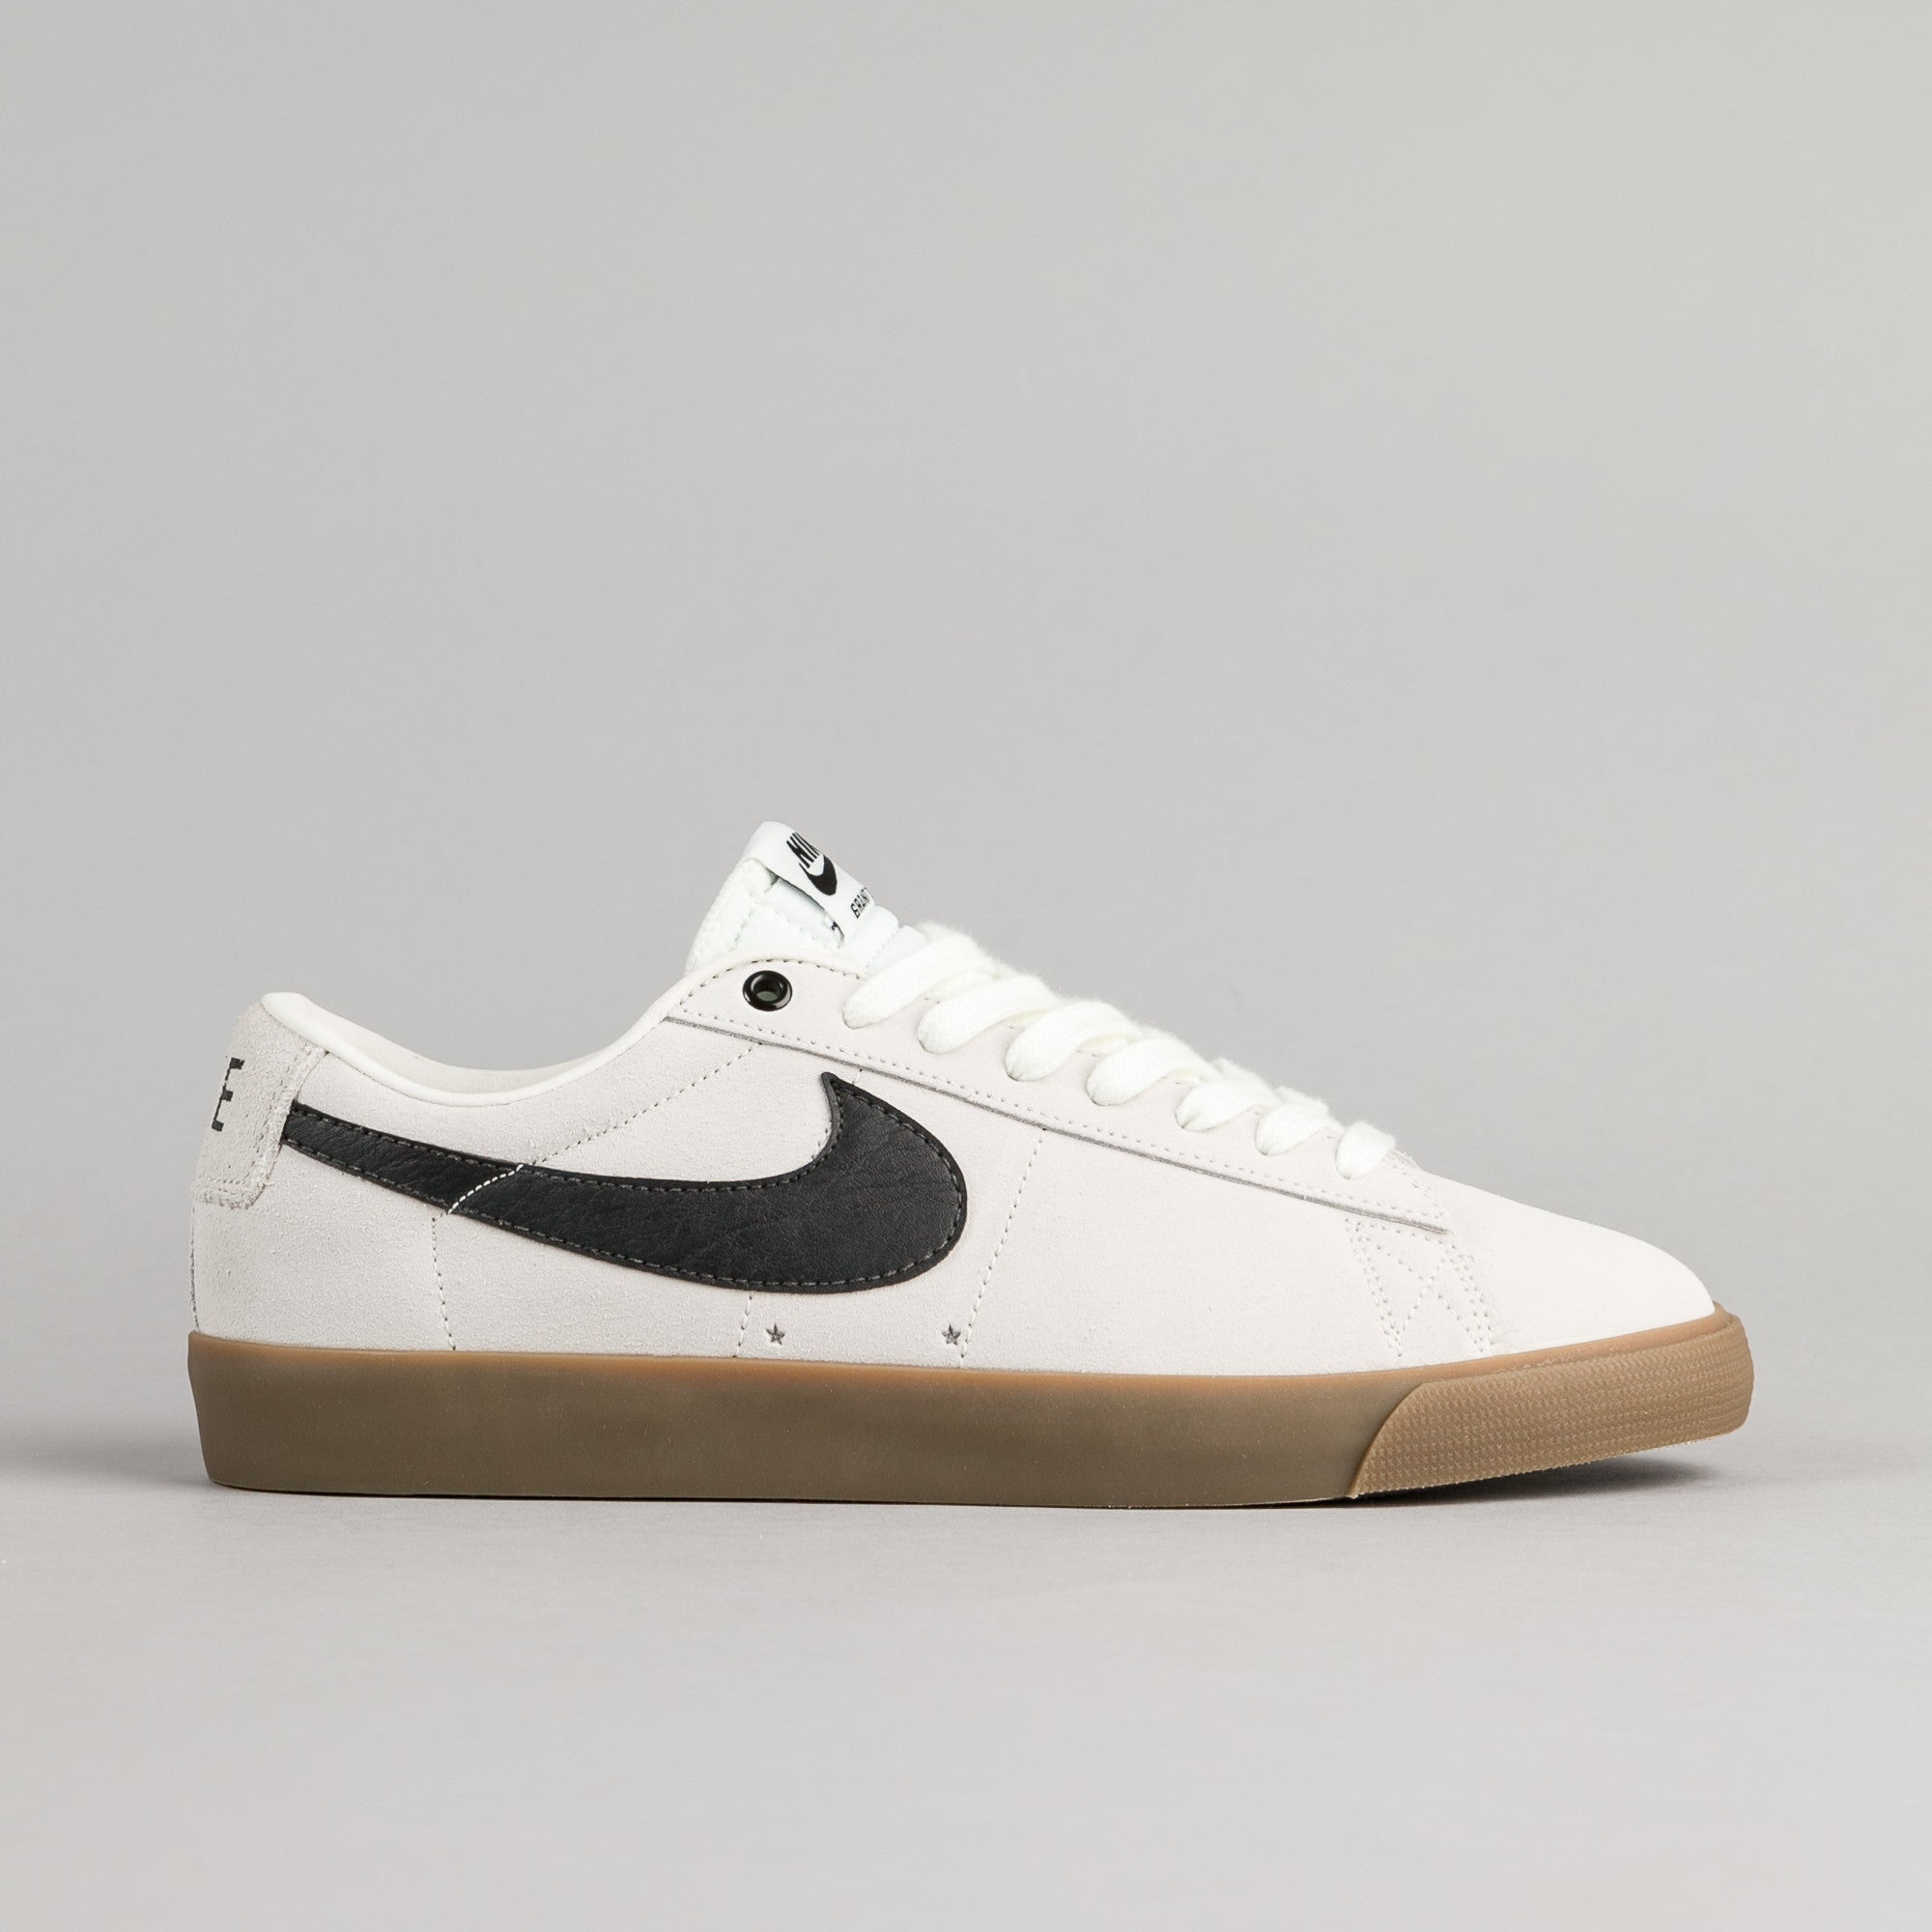 5b103bc5b04df4 Nike SB Blazer Low GT Shoes - Ivory   Black - Gum Light Brown